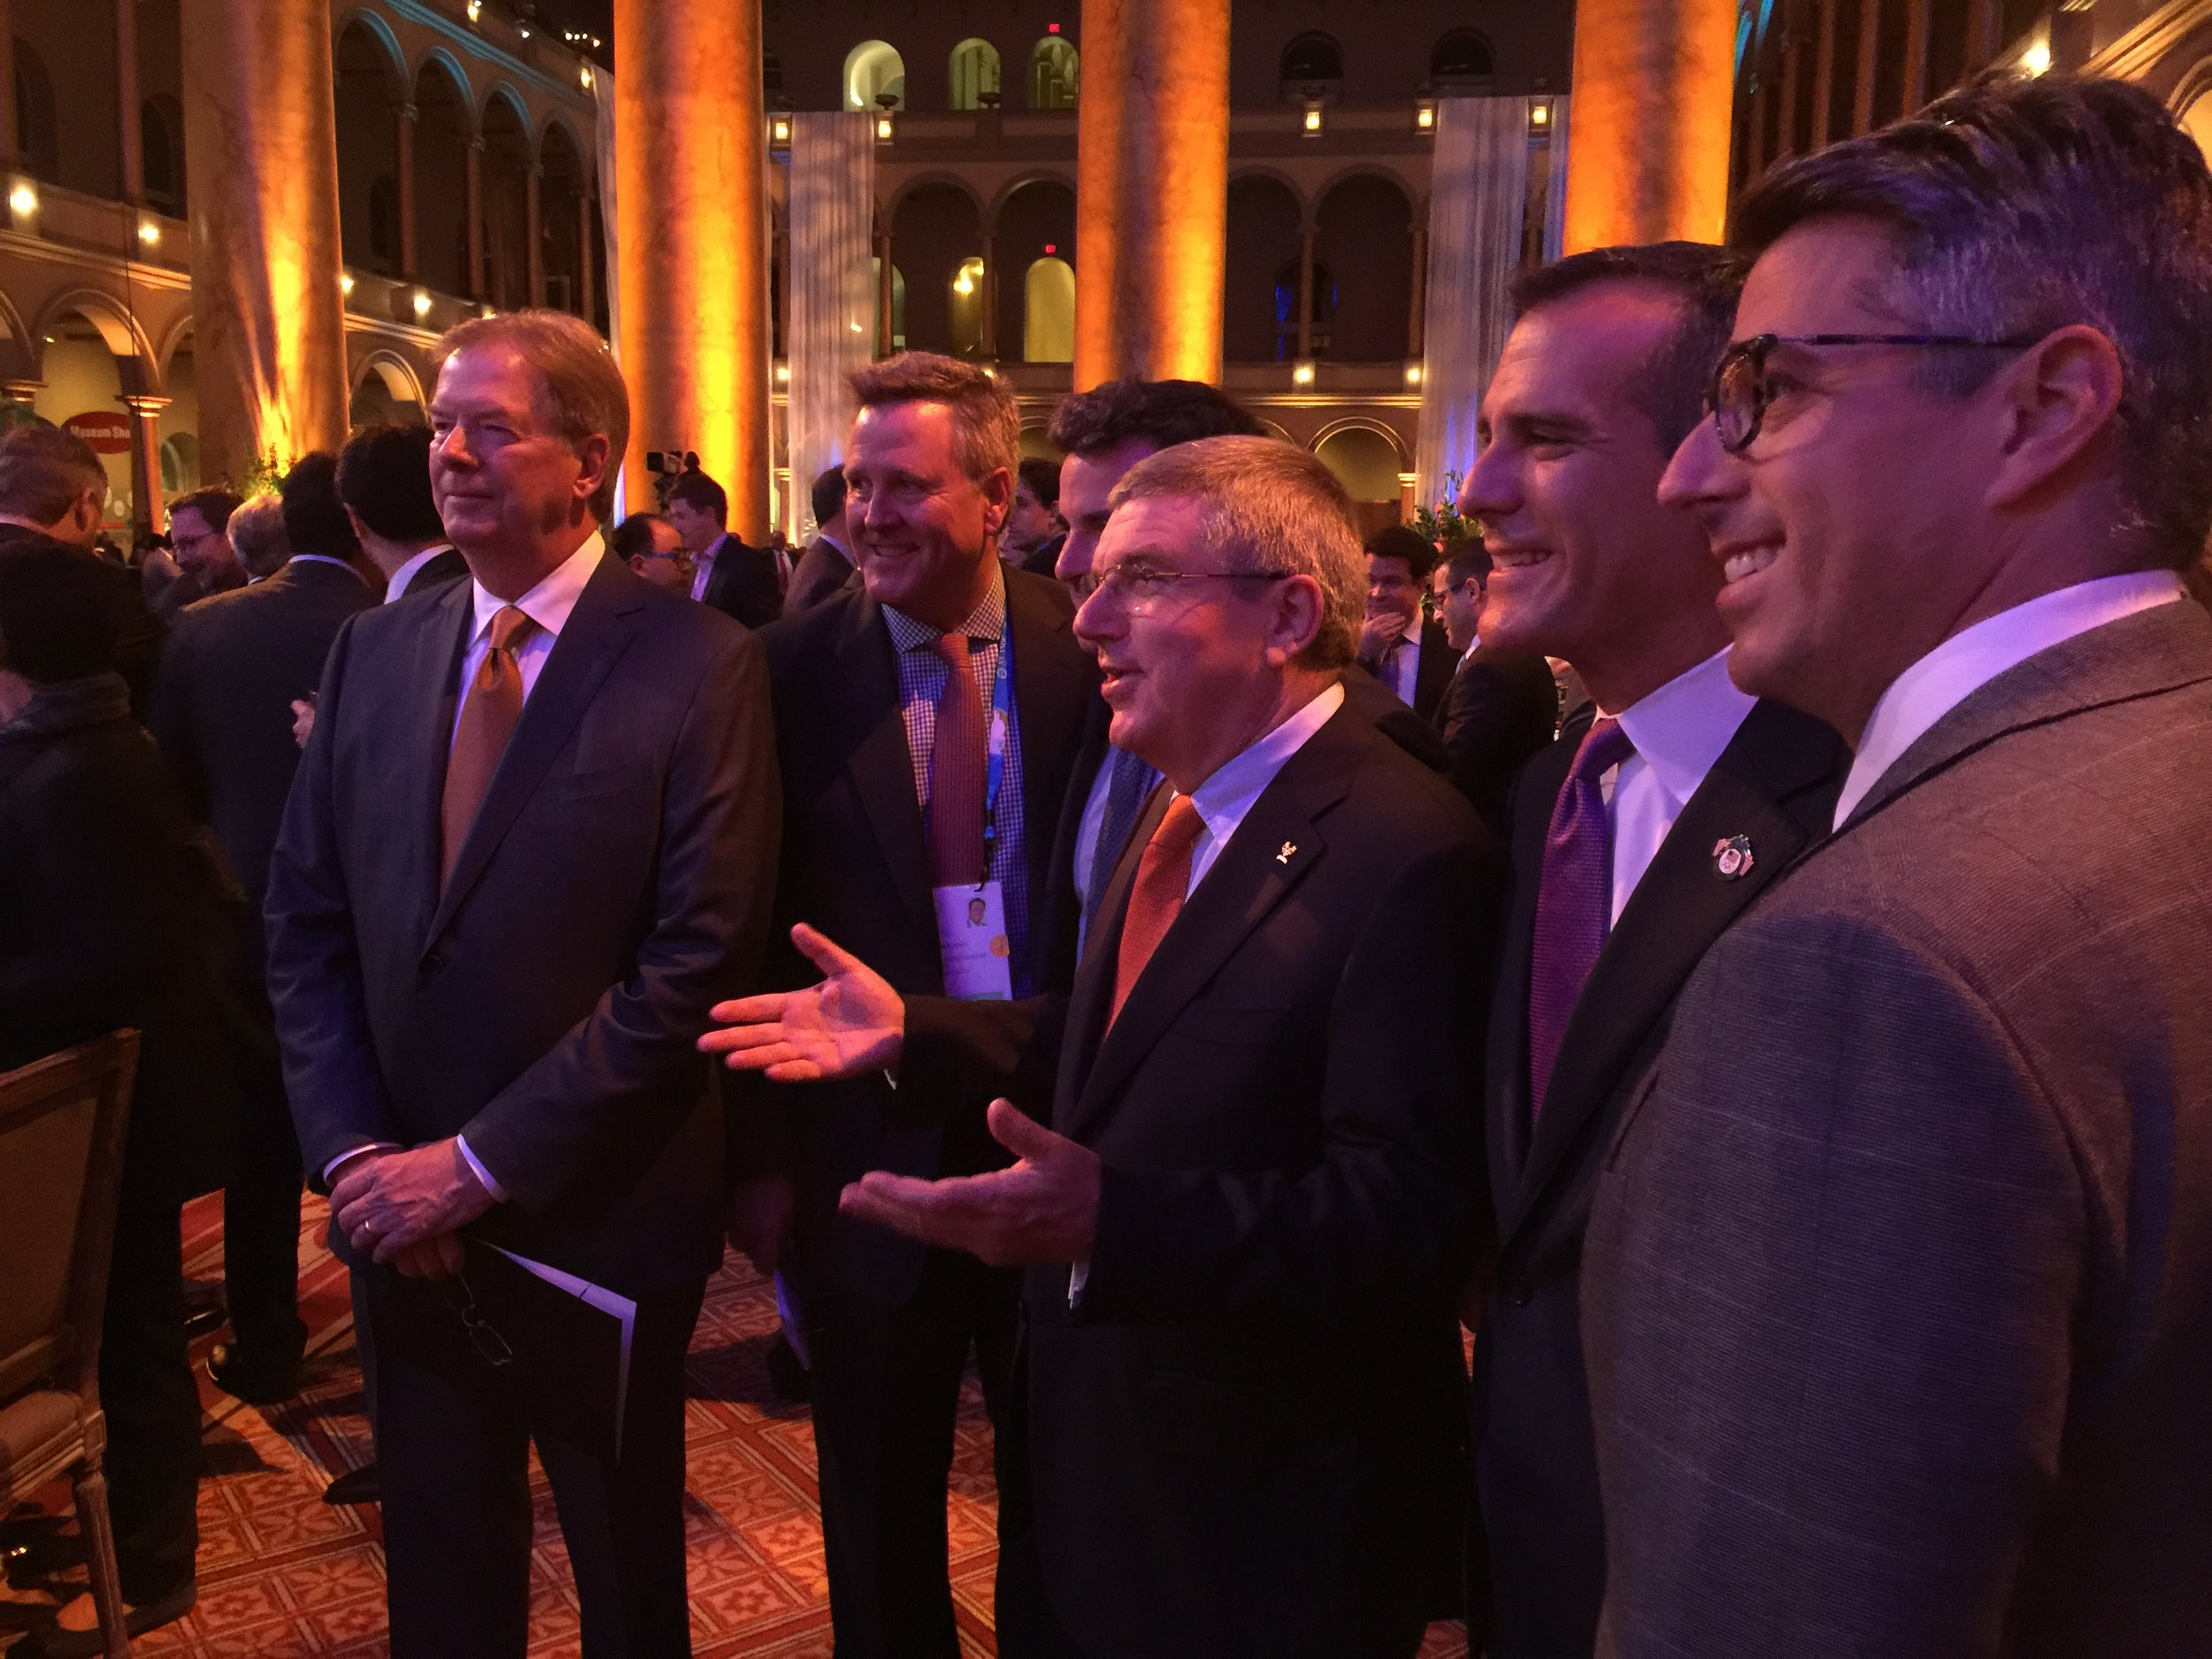 At Wednesday evening's USOC-hosted reception, left to right: USOC board chair Larry Probst, USOC chief executive Scott Blackmun, IOC president Thomas Bach, LA mayor Eric Garcetti, LA 2024 bid chief Casey Wasserman